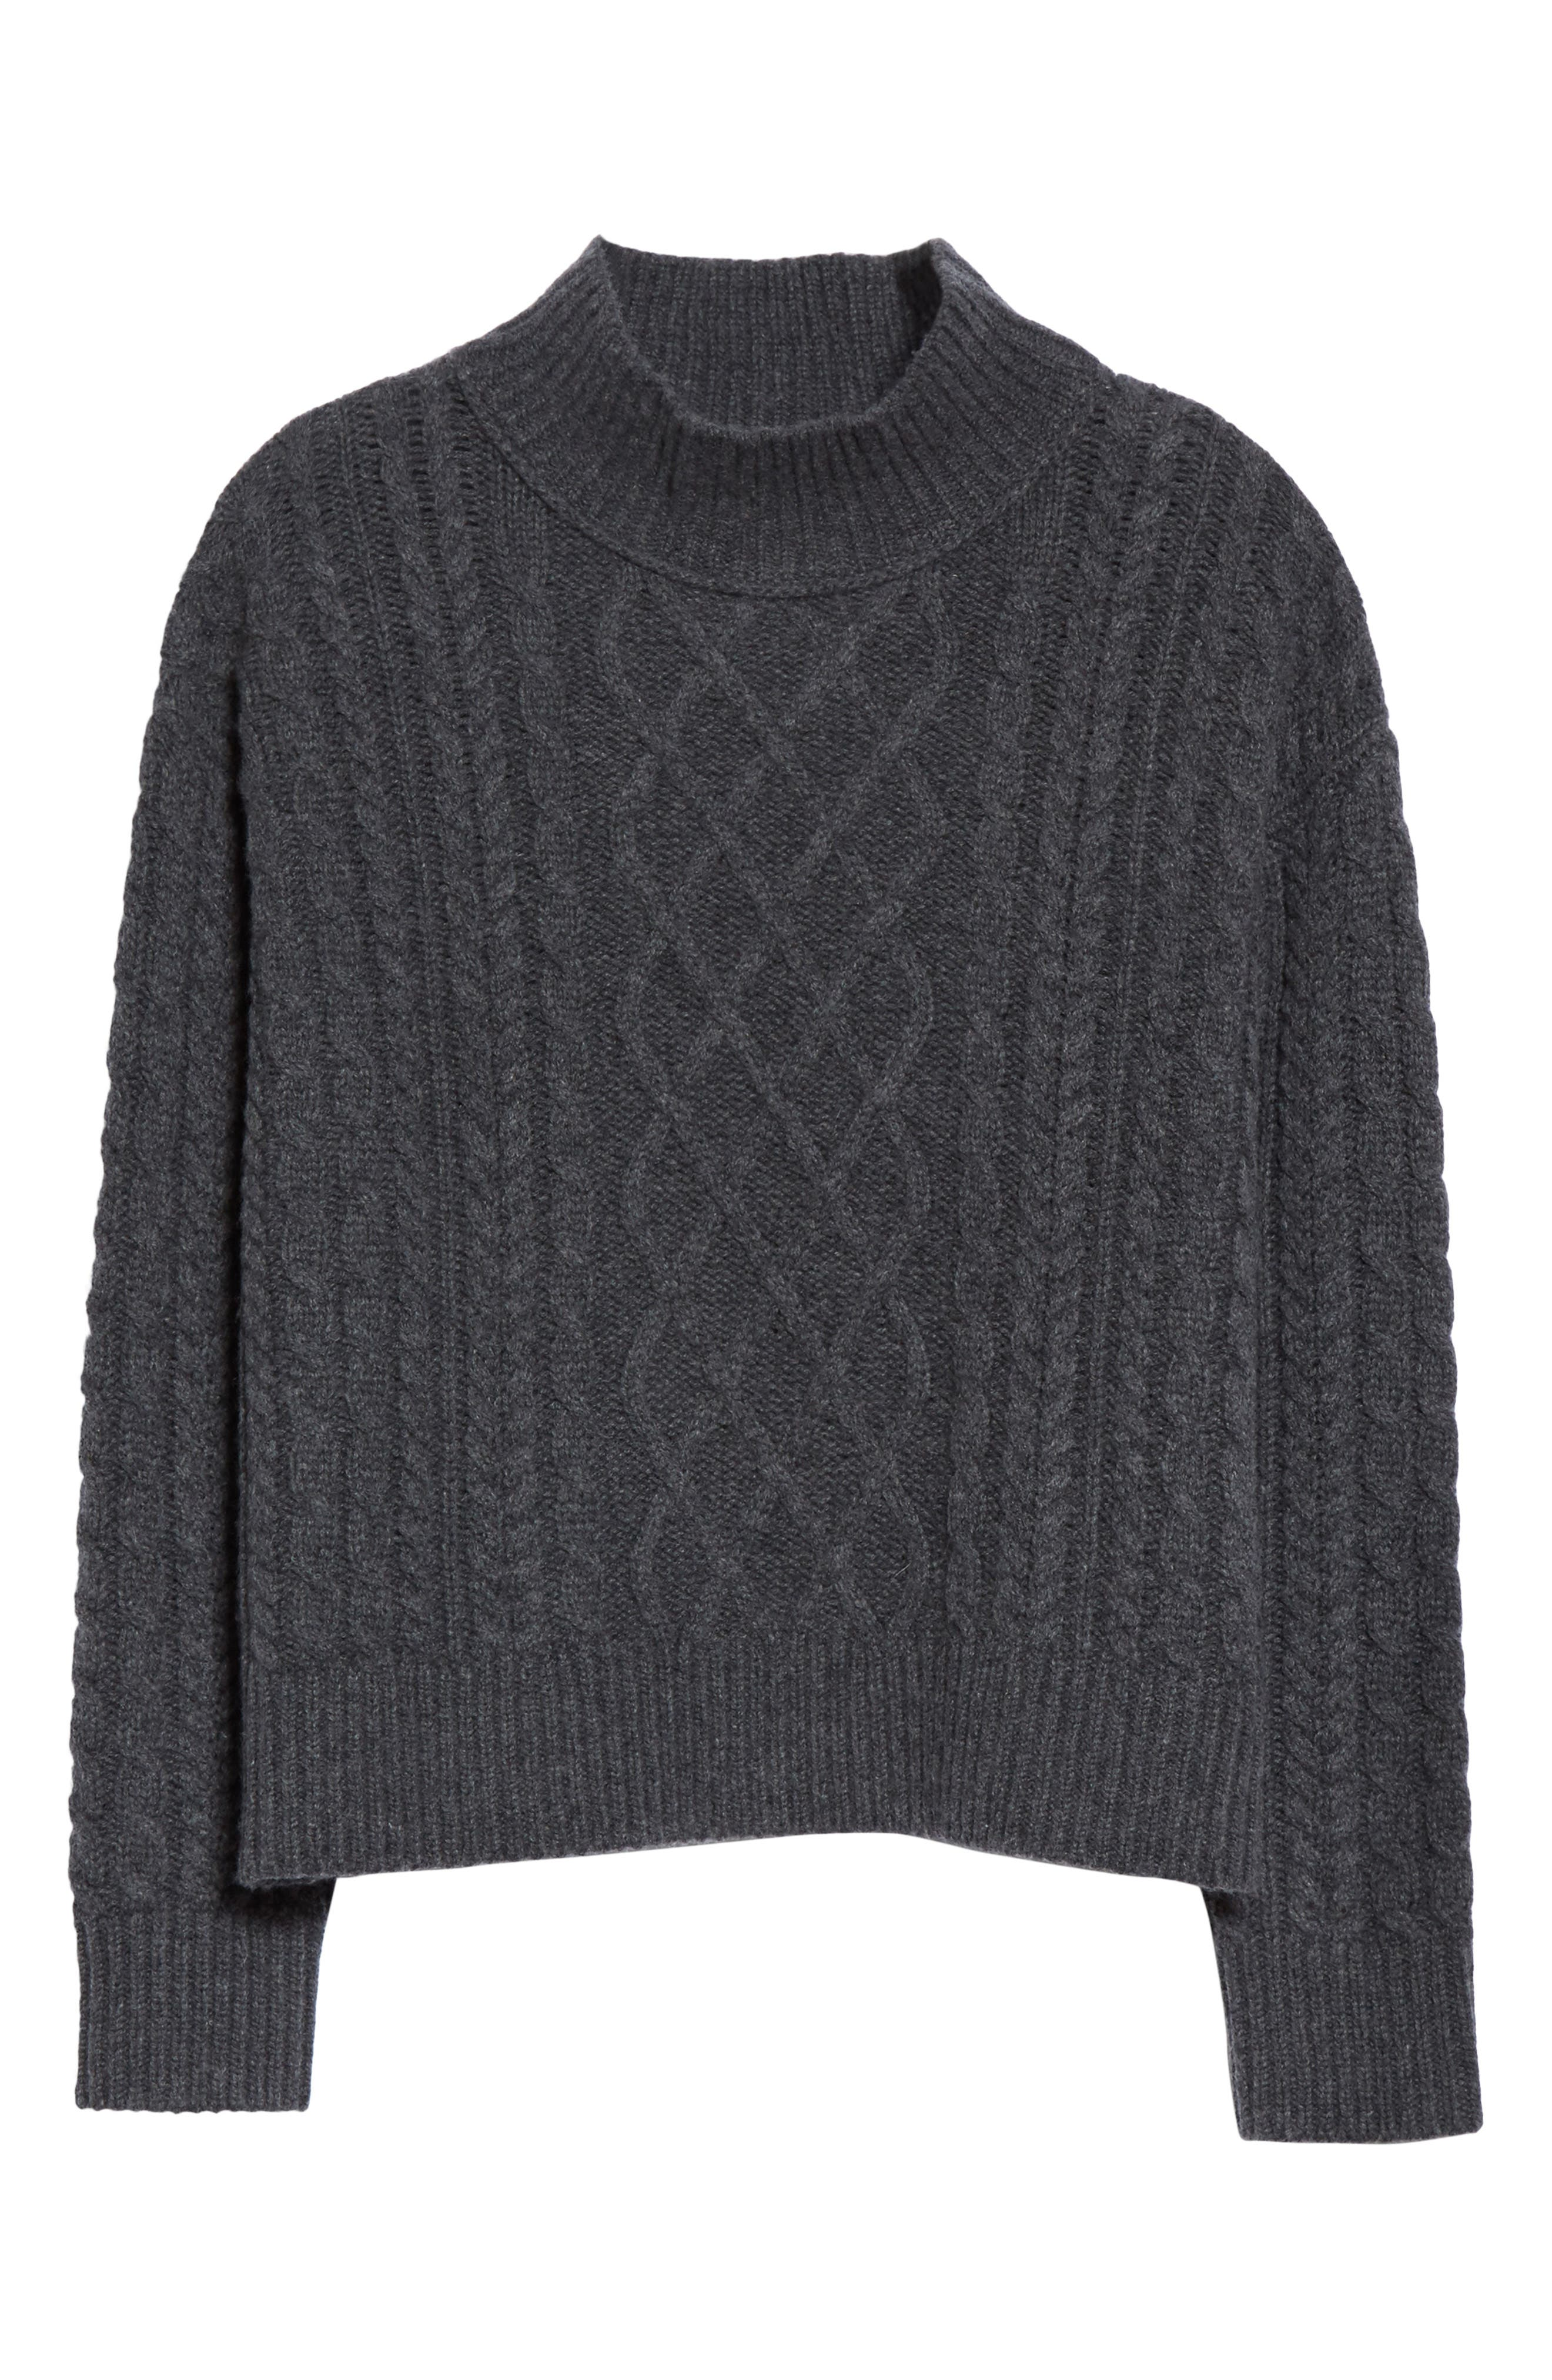 Wool & Cashmere Cable Knit Crop Sweater,                             Alternate thumbnail 7, color,                             Charcoal